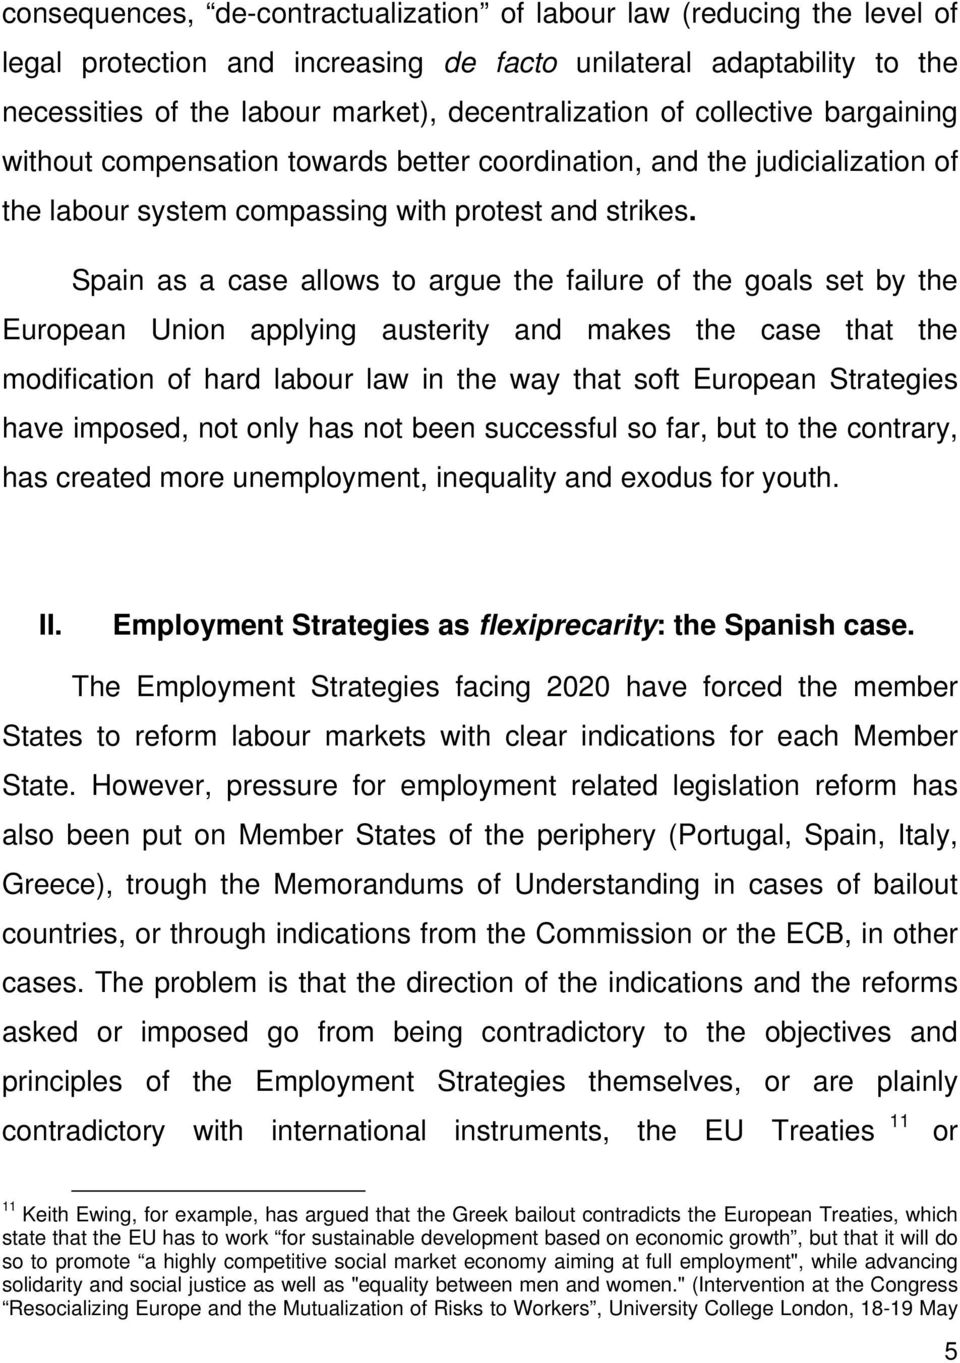 Spain as a case allows to argue the failure of the goals set by the European Union applying austerity and makes the case that the modification of hard labour law in the way that soft European